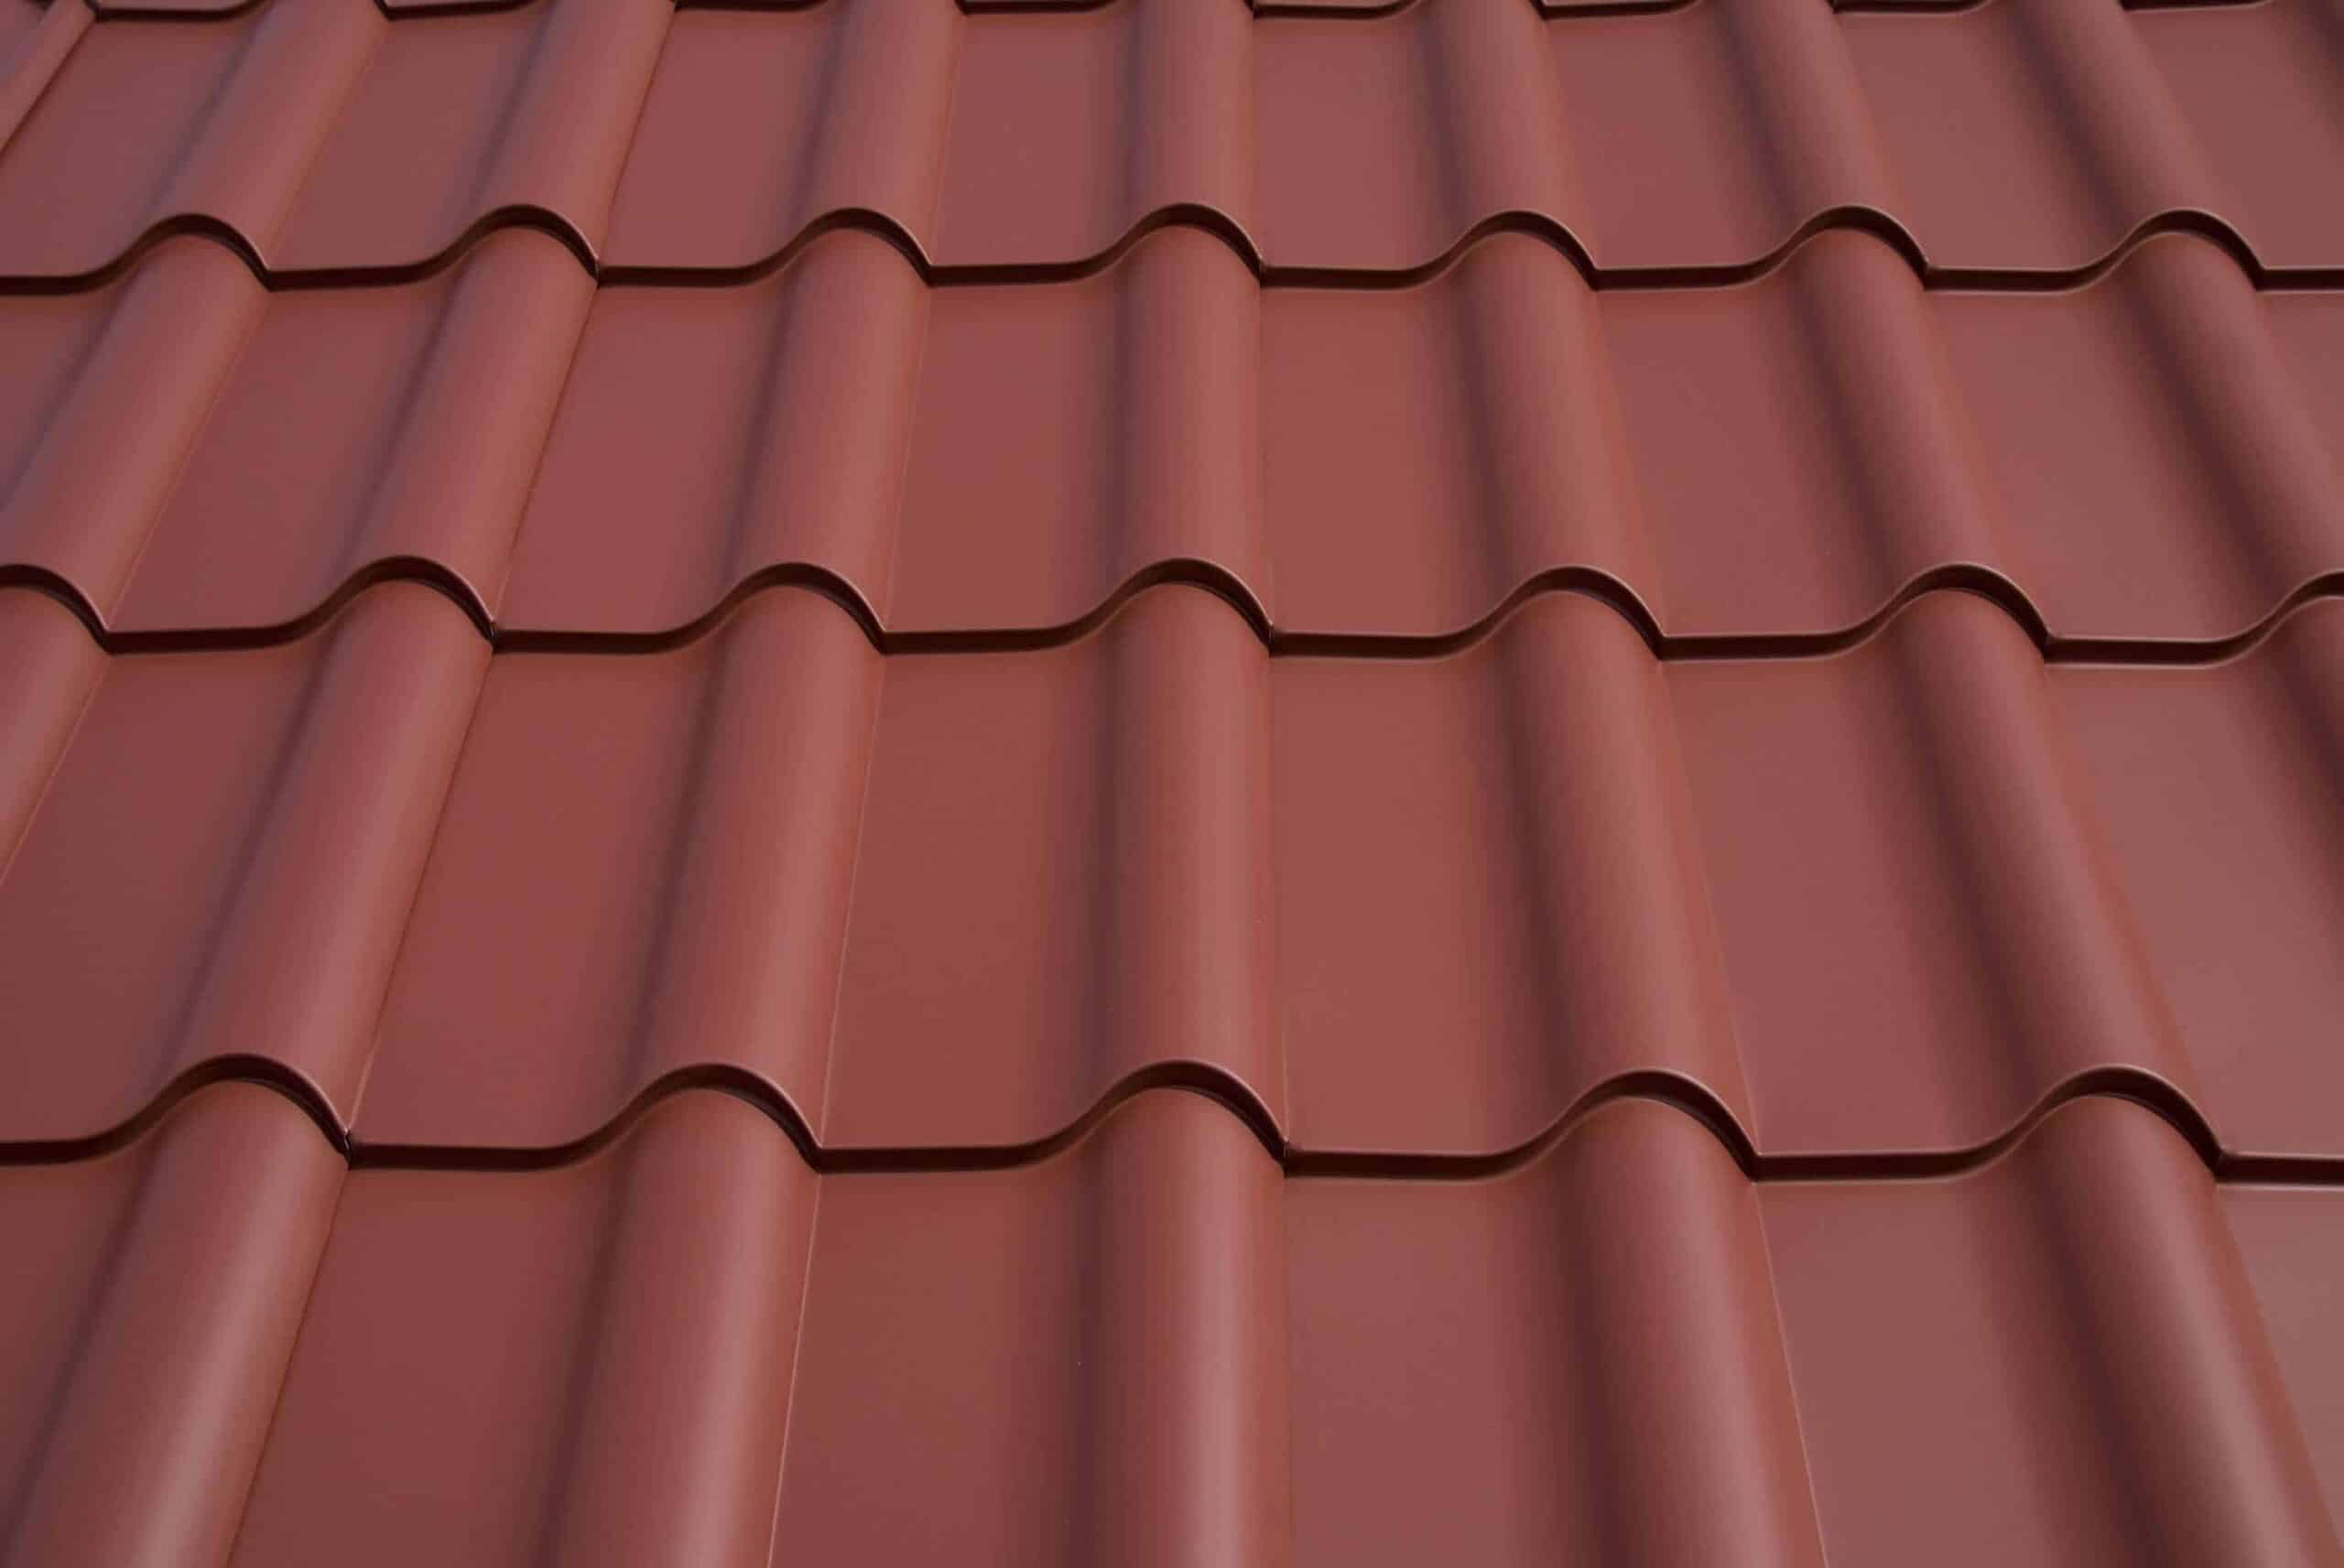 Roof material 95